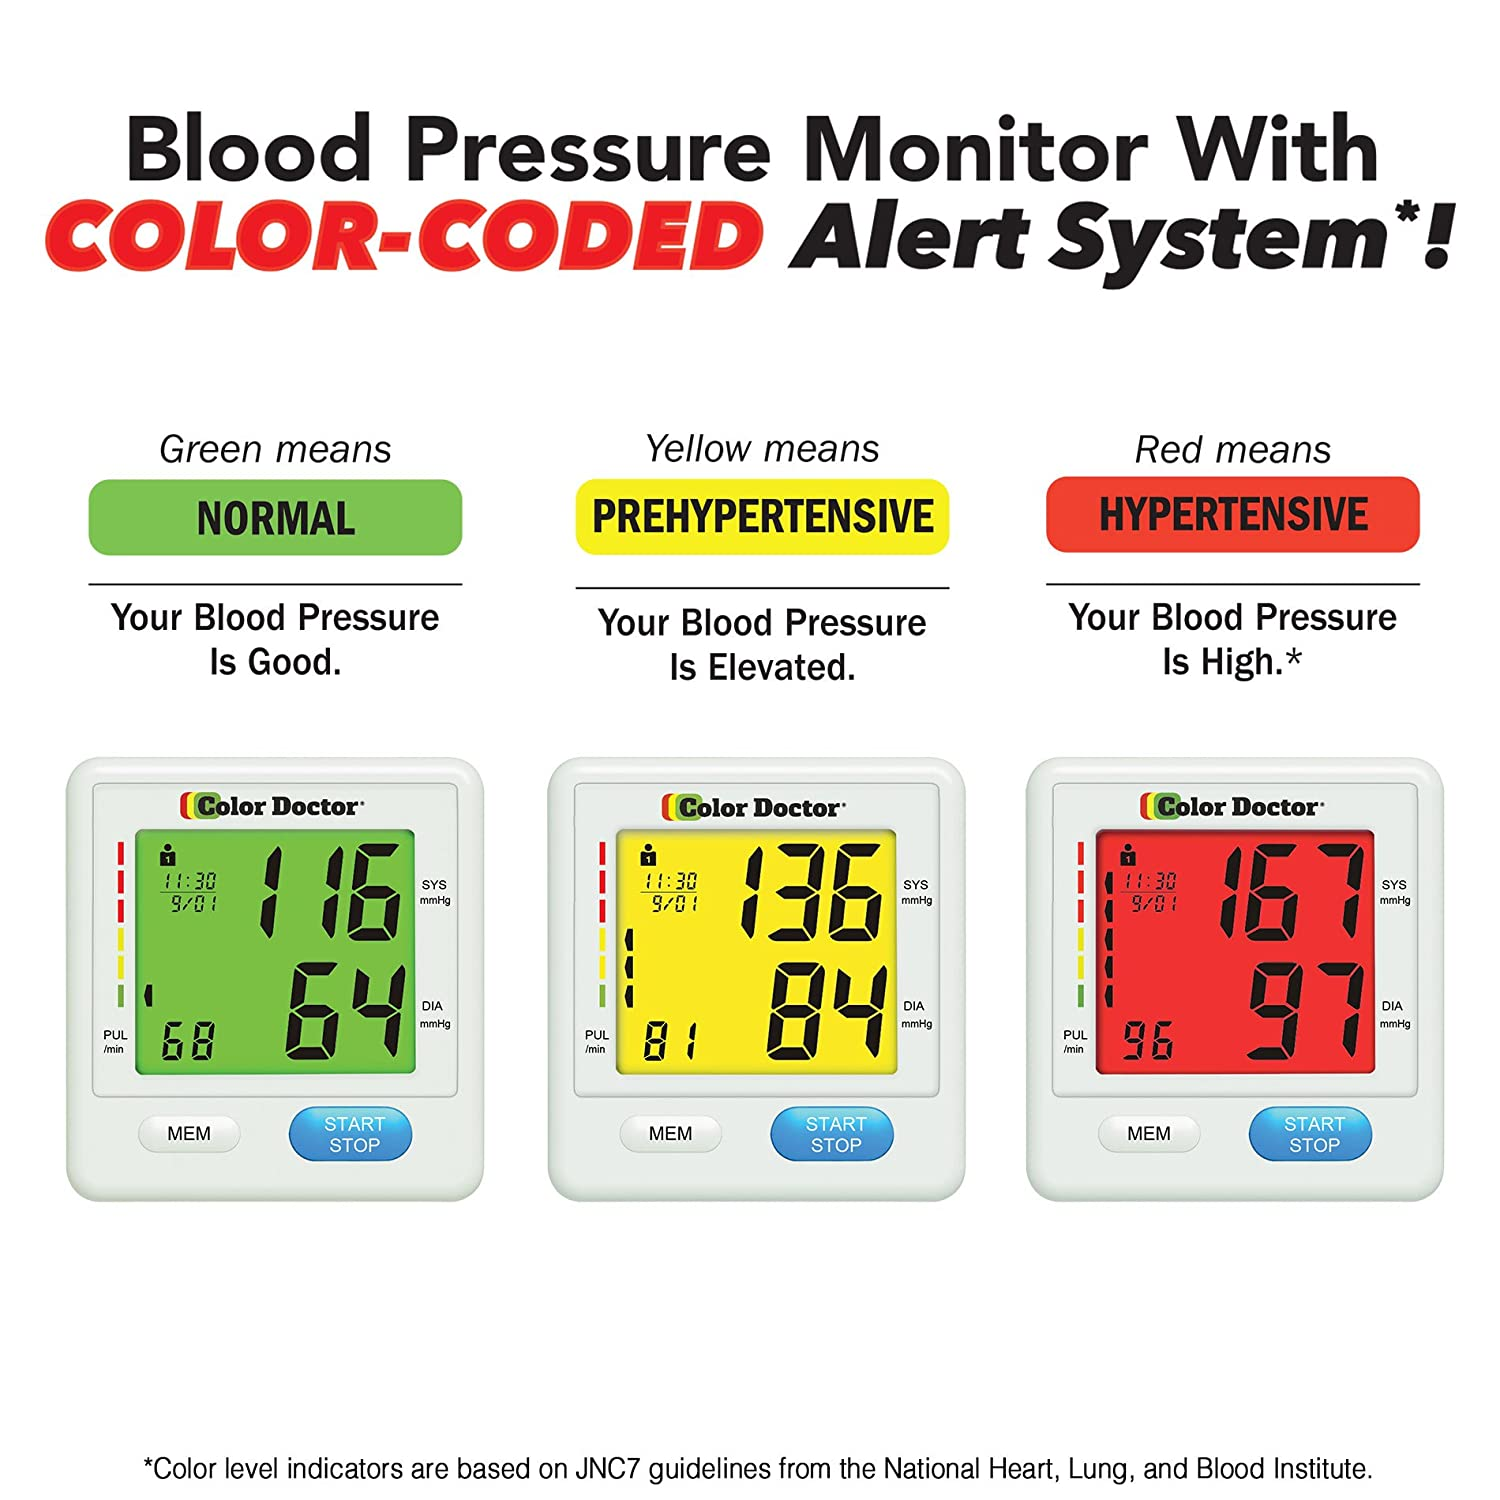 Amazon color doctor blood pressure monitor by bulbhead check amazon color doctor blood pressure monitor by bulbhead check blood pressure wrist blood pressure monitor health personal care nvjuhfo Image collections